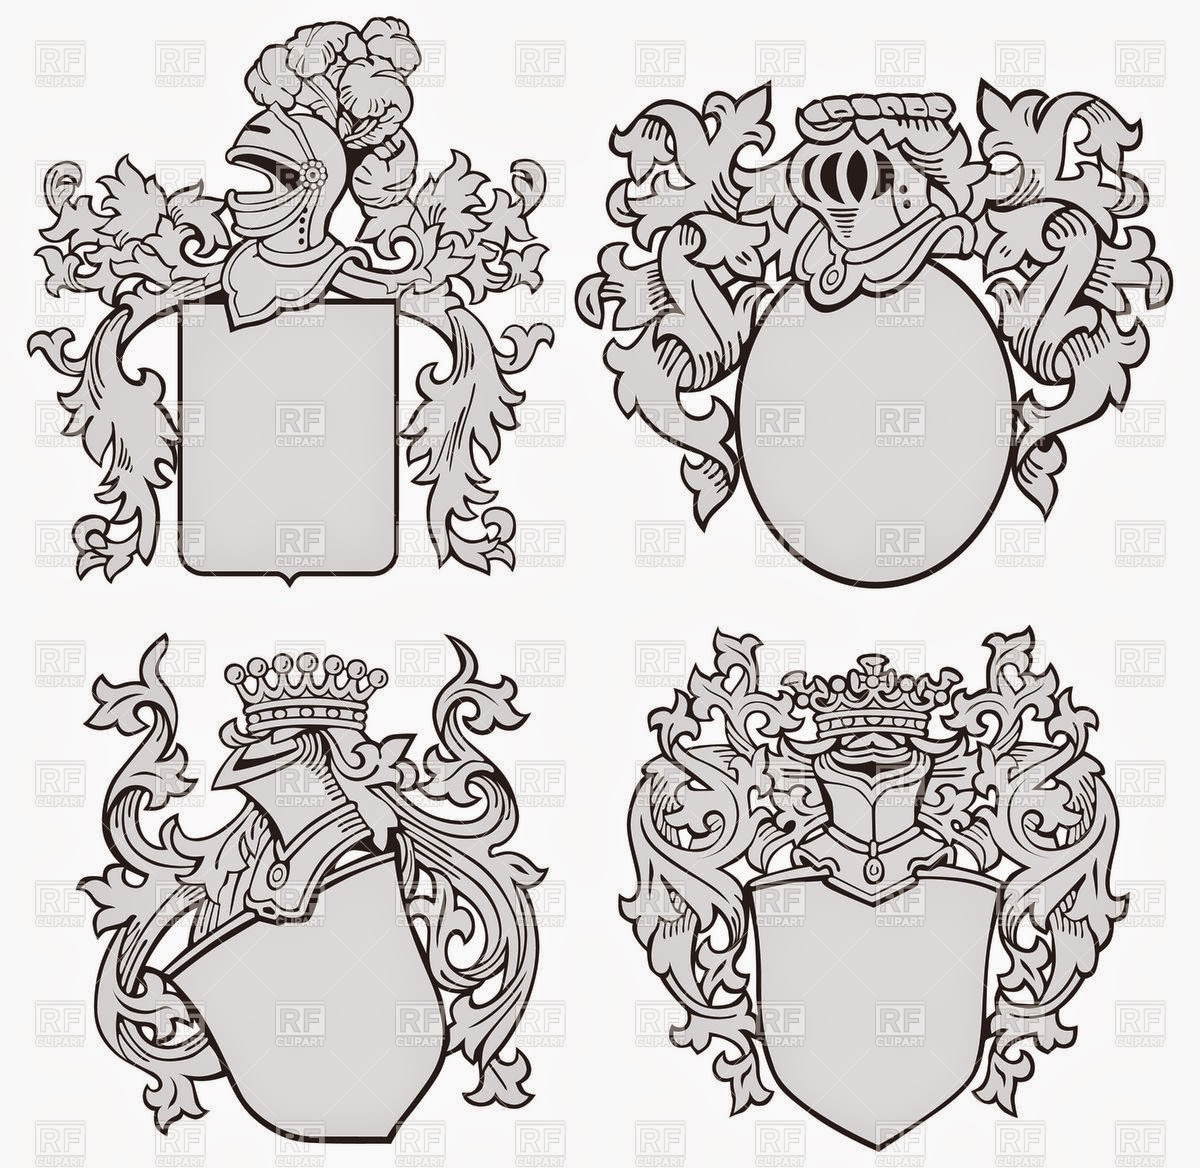 Mr MintArt Personal Coat of Arms Project – Coat of Arms Worksheet